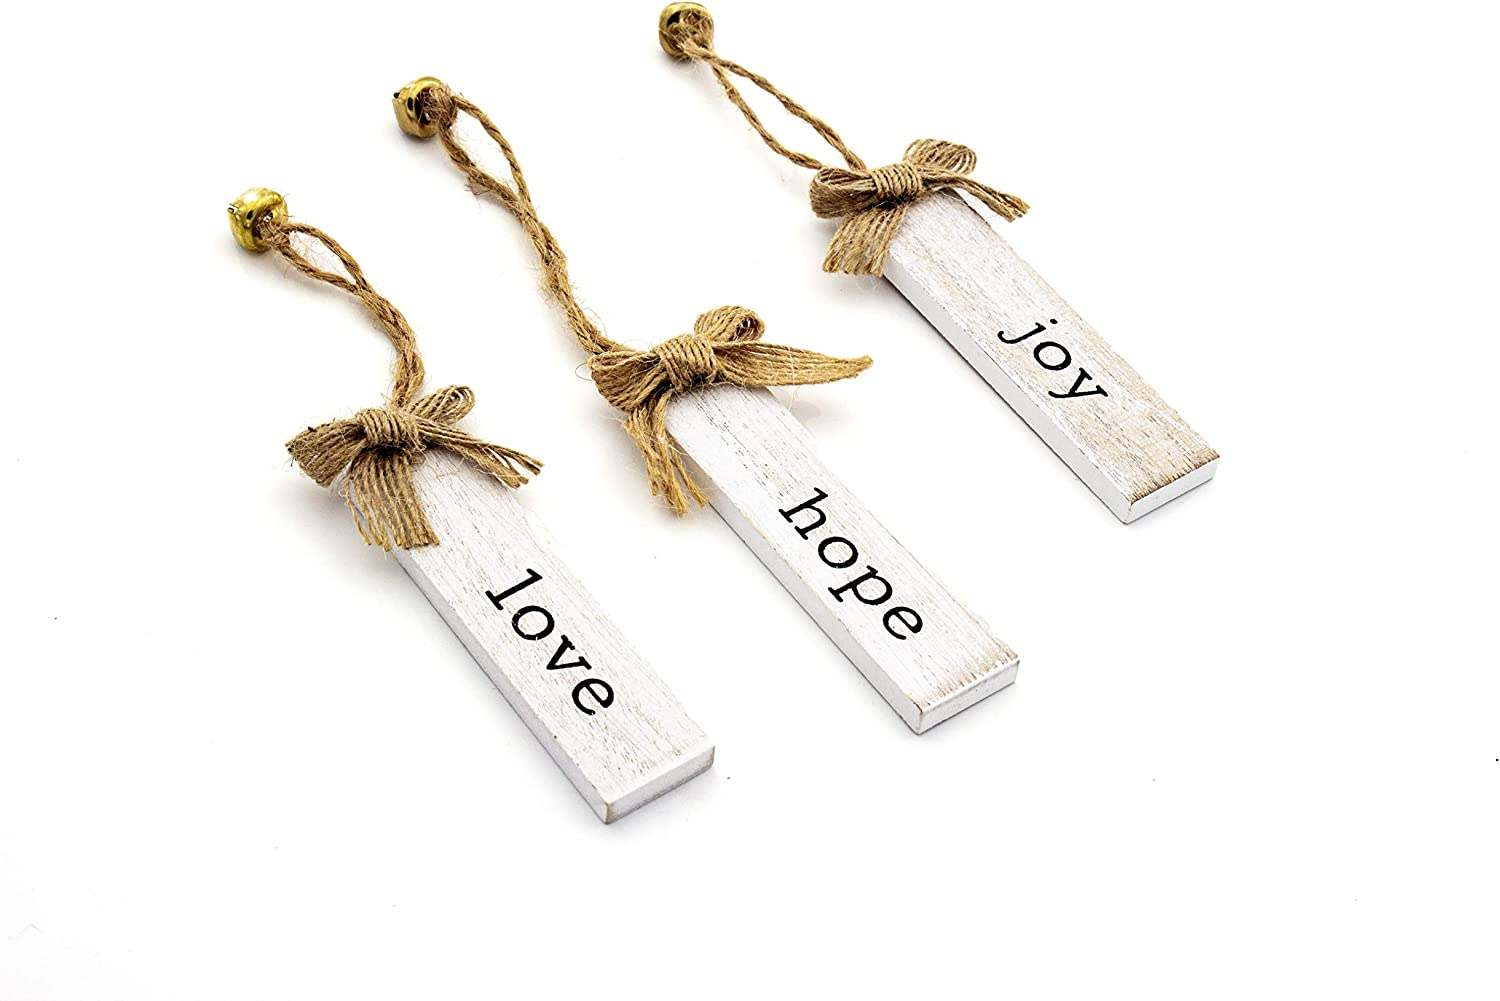 Elysian Gift Shop Rustic Natural Wood Christmas Tree Hanging Ornament Set. Hope, Love and Joy Farmhouse Christmas Decor Ornaments with Bell Charm and Burlap Bow (Pack of 3)